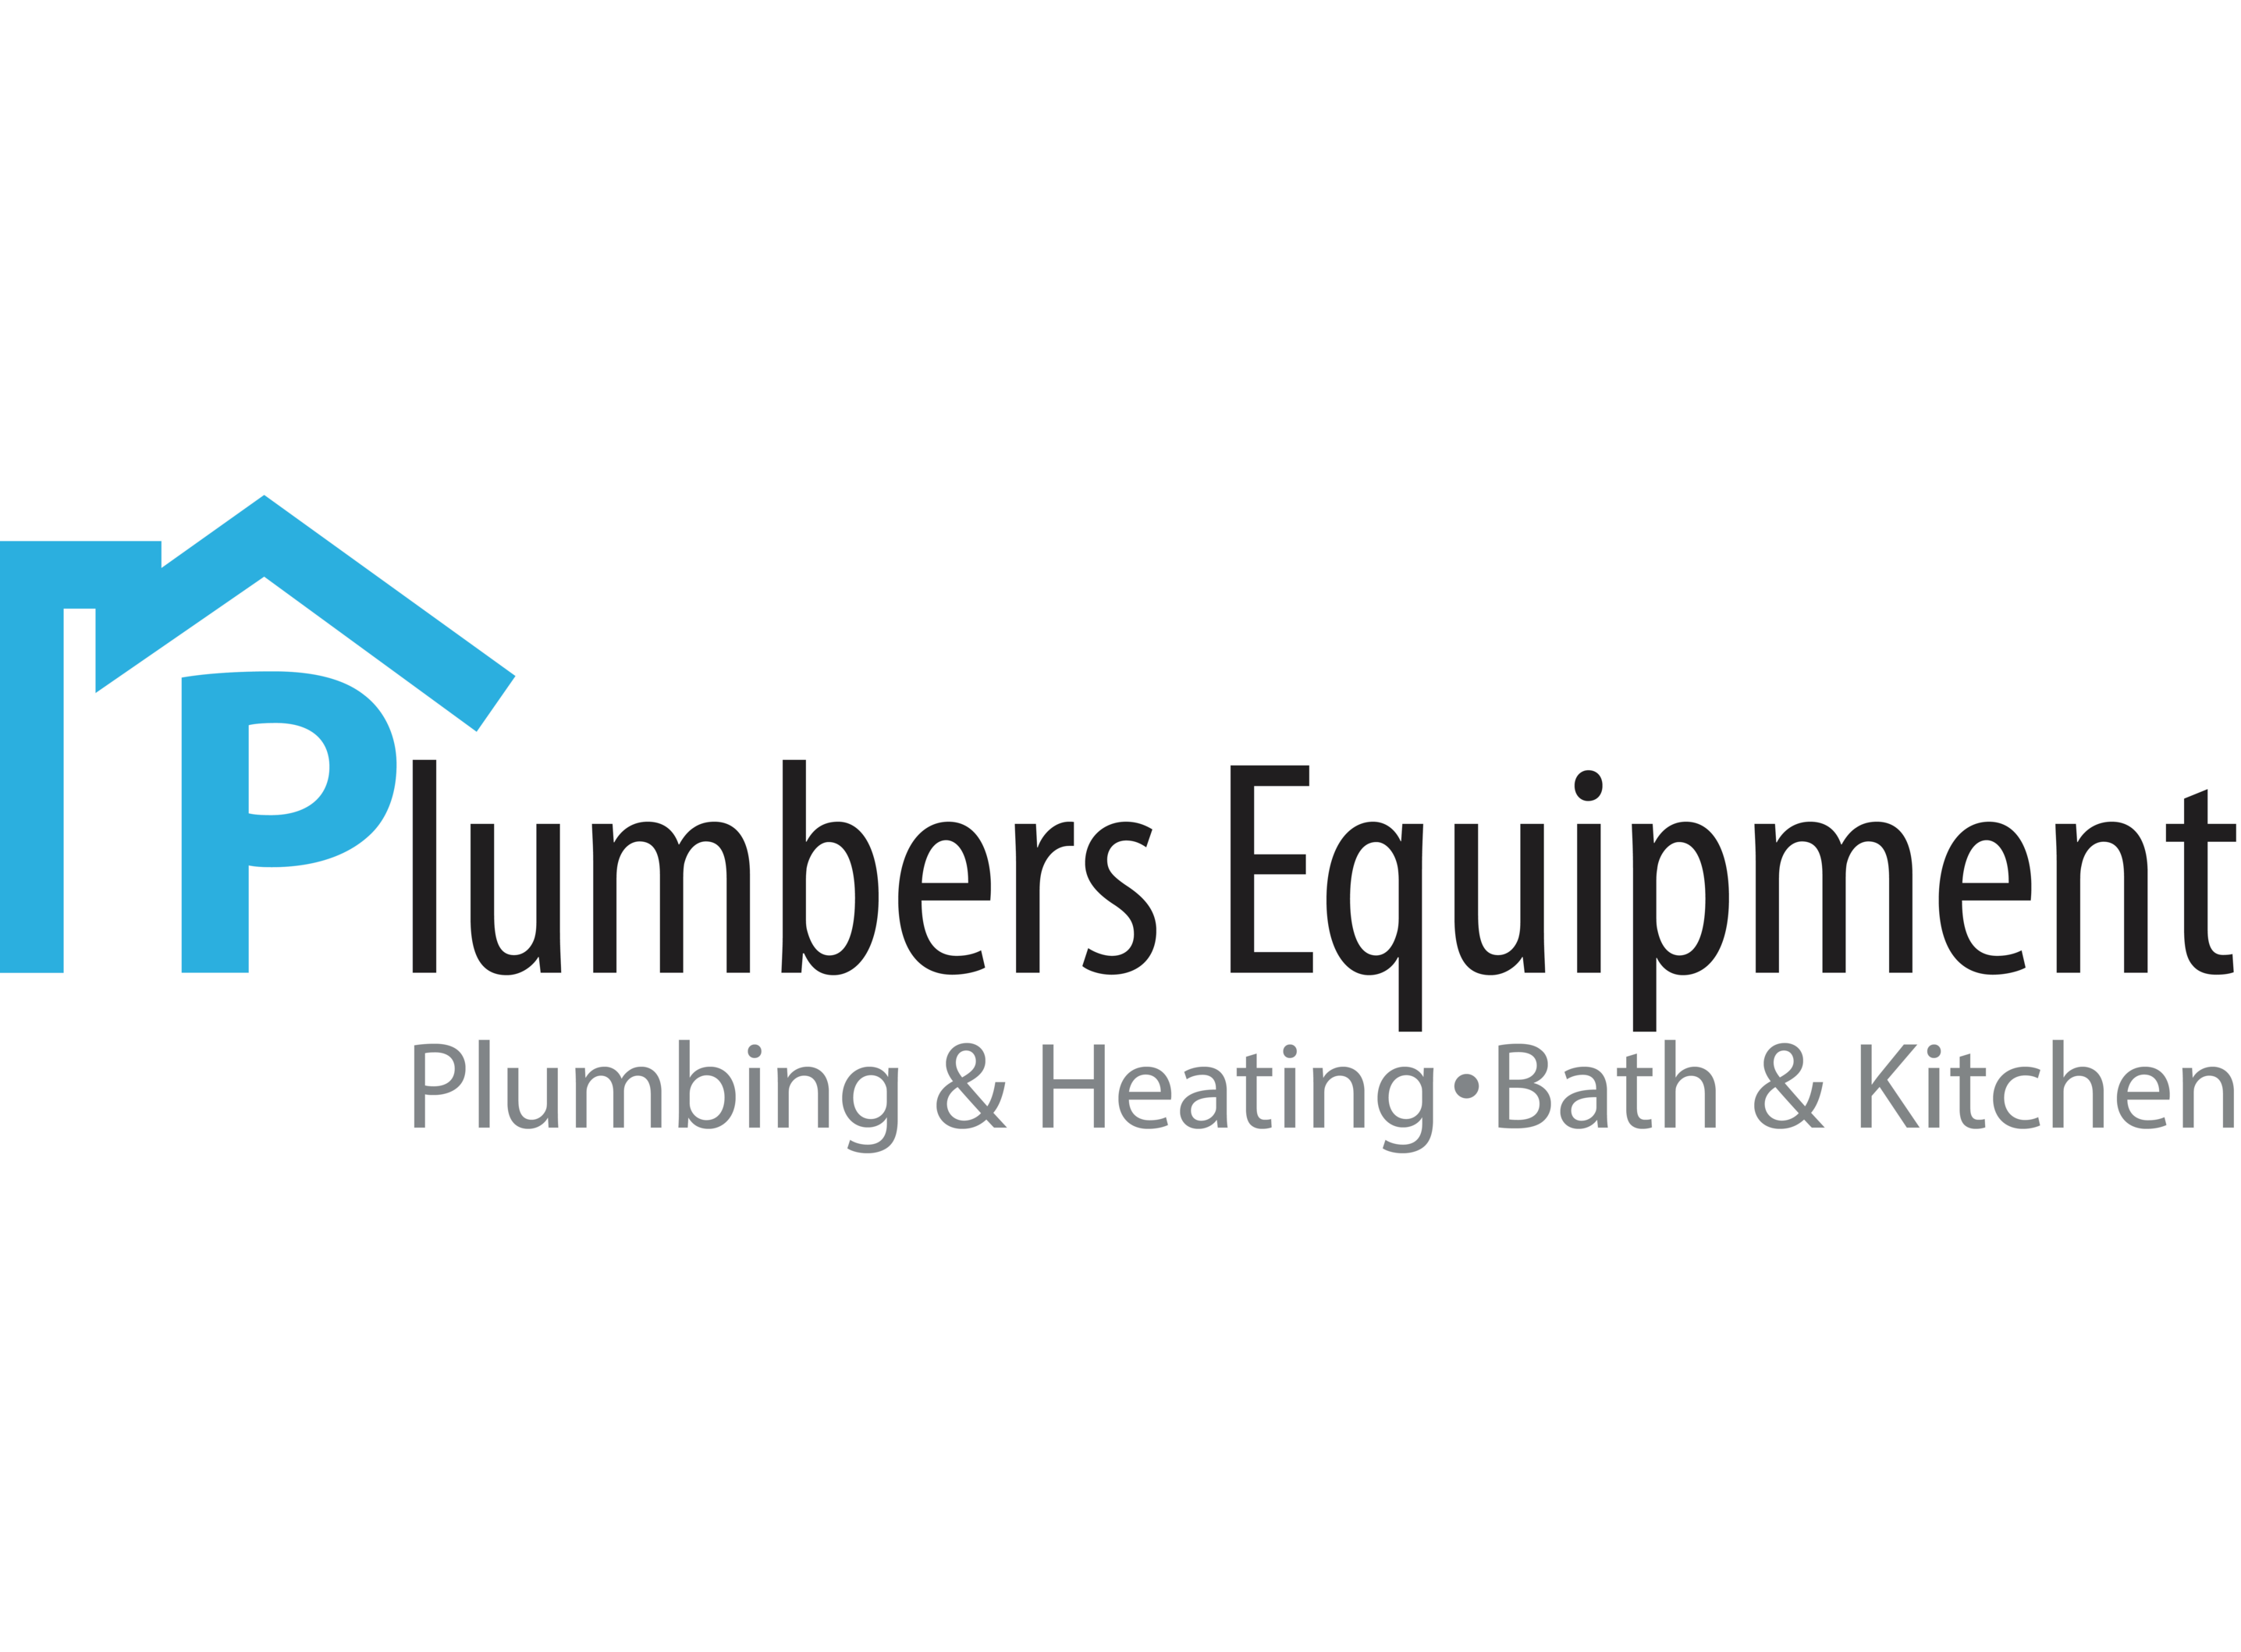 Logo for Plumbers Equipment